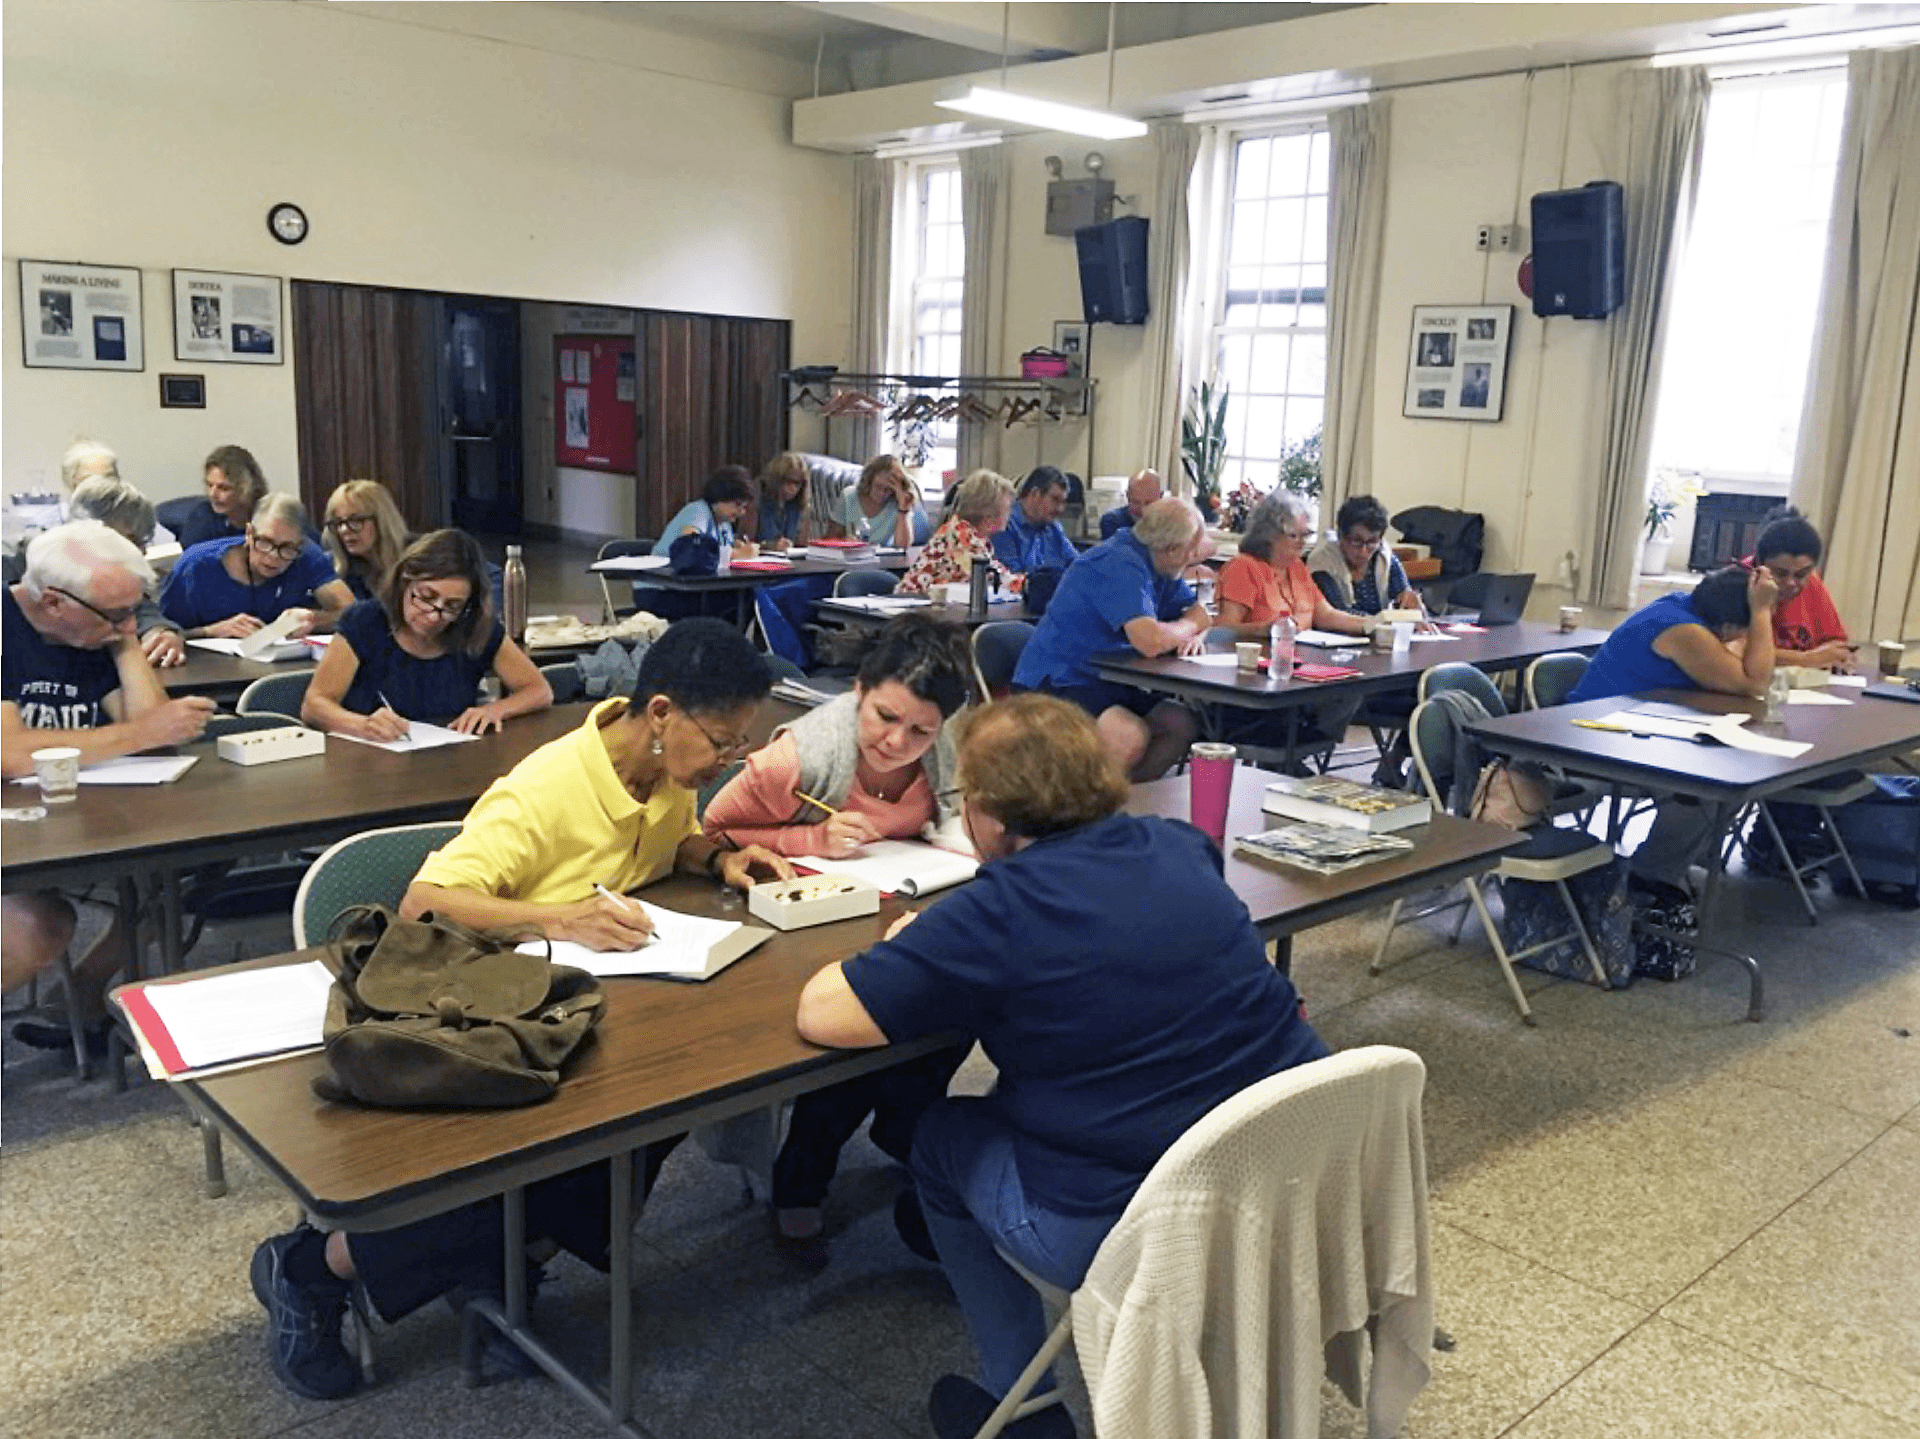 photo shows a classroom setting where master gardeners are learning to ideinty pests